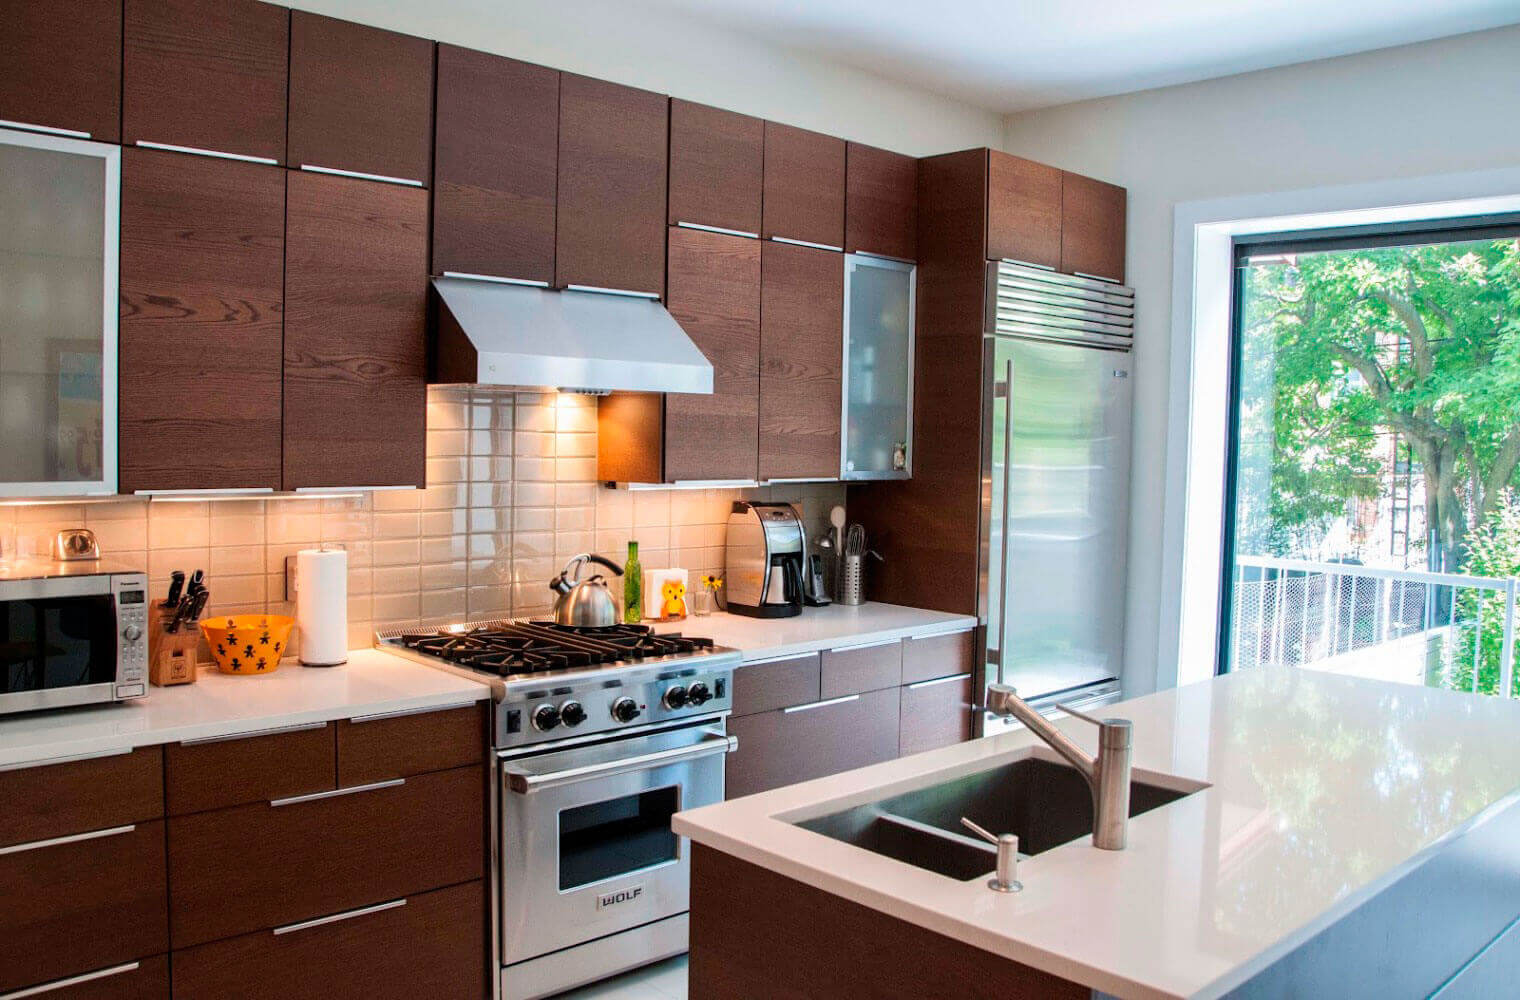 This kitchen has been completely transformed to a contemporary kitchen. Some of the key elements it features include sleek contemporary kitchen cabinets, brick backsplash, granite countertops, a custom island, stainless steel appliances, floor–to–ceiling windows, and industrial light fixtures